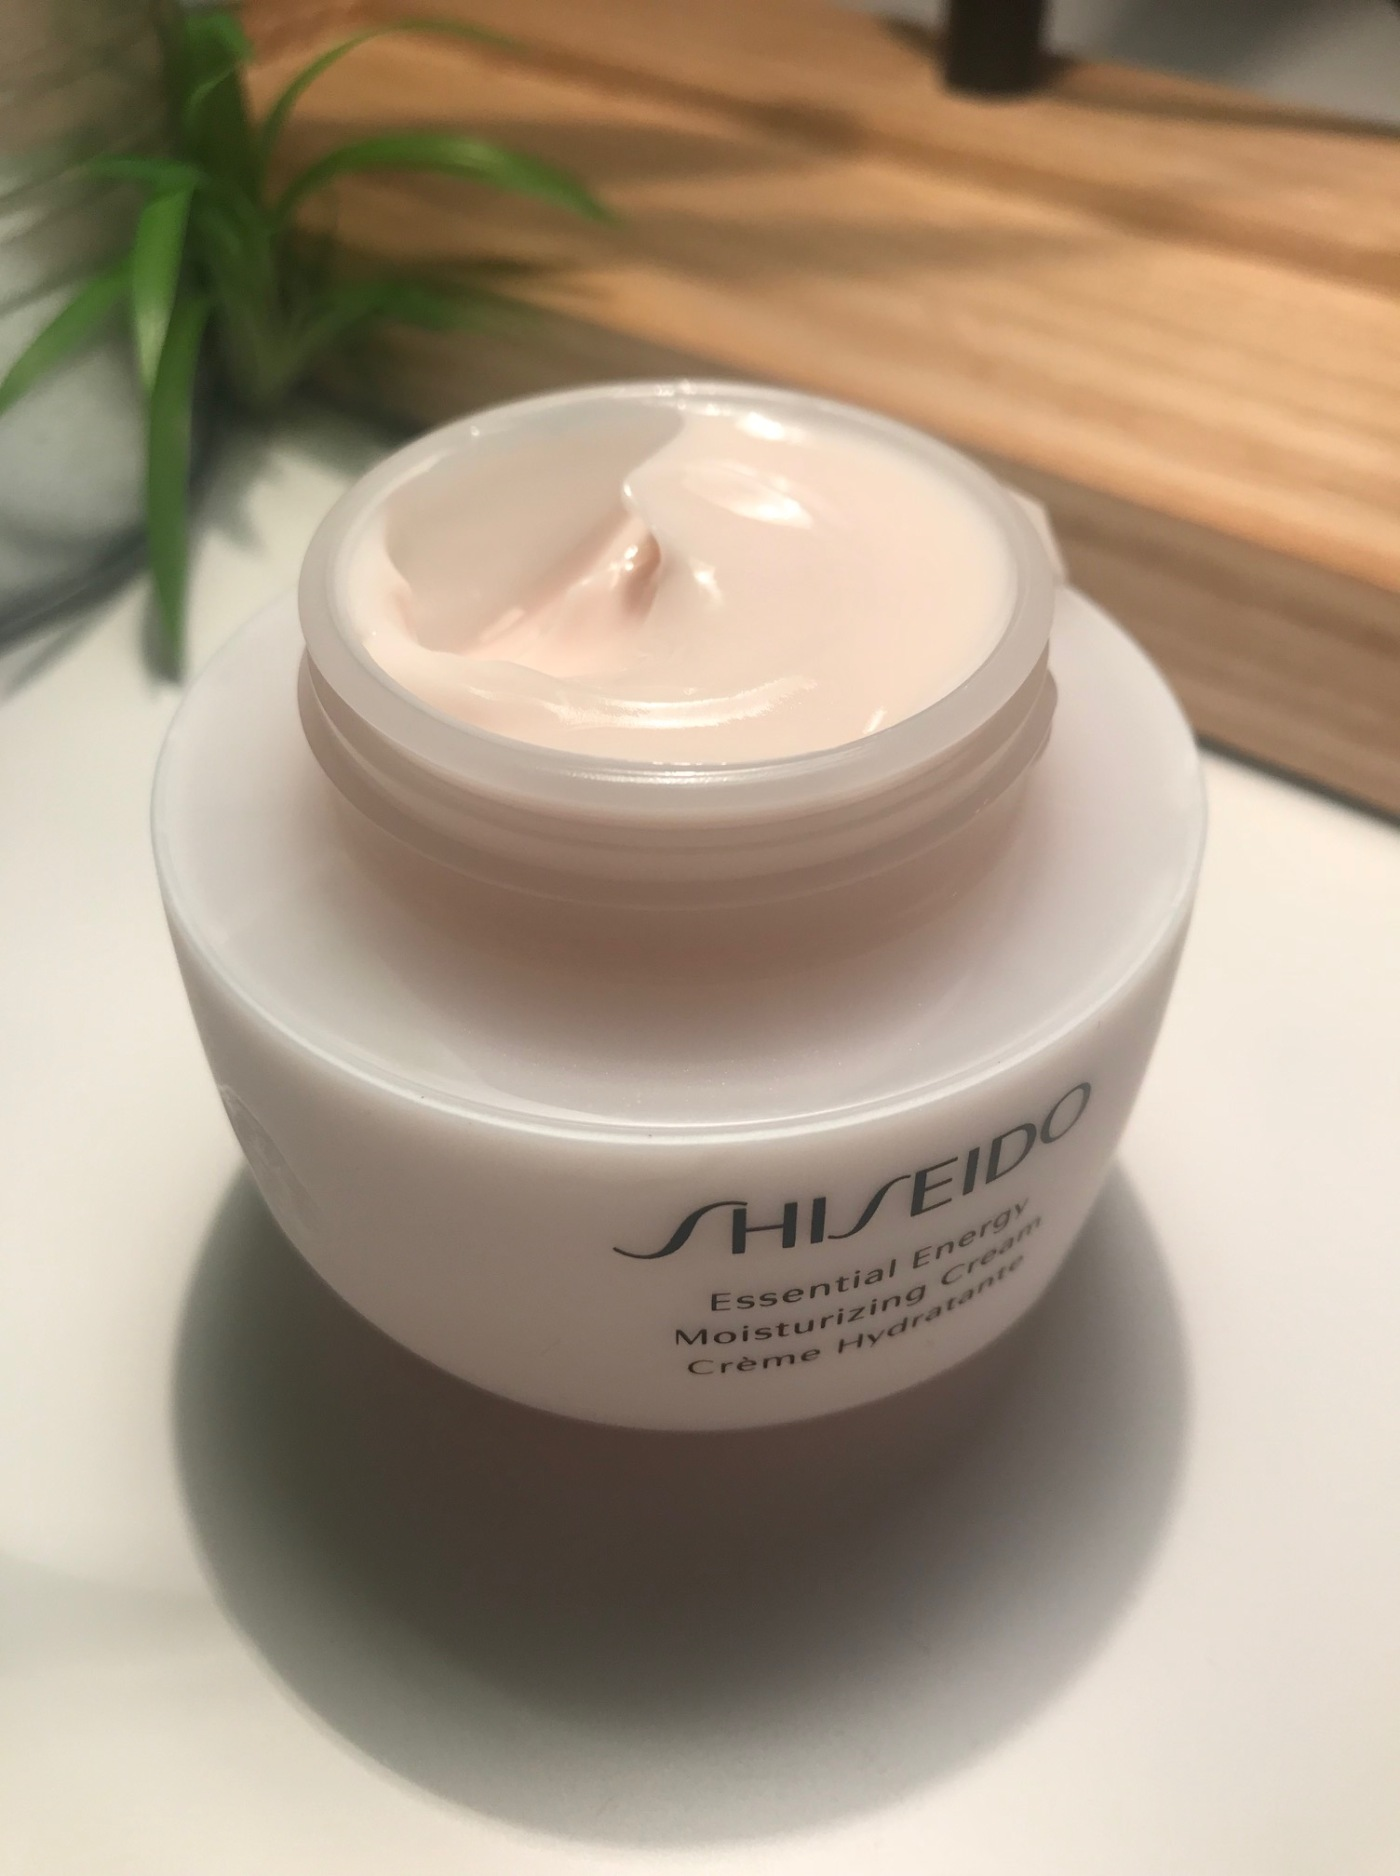 shiseido_essential_energy_cream